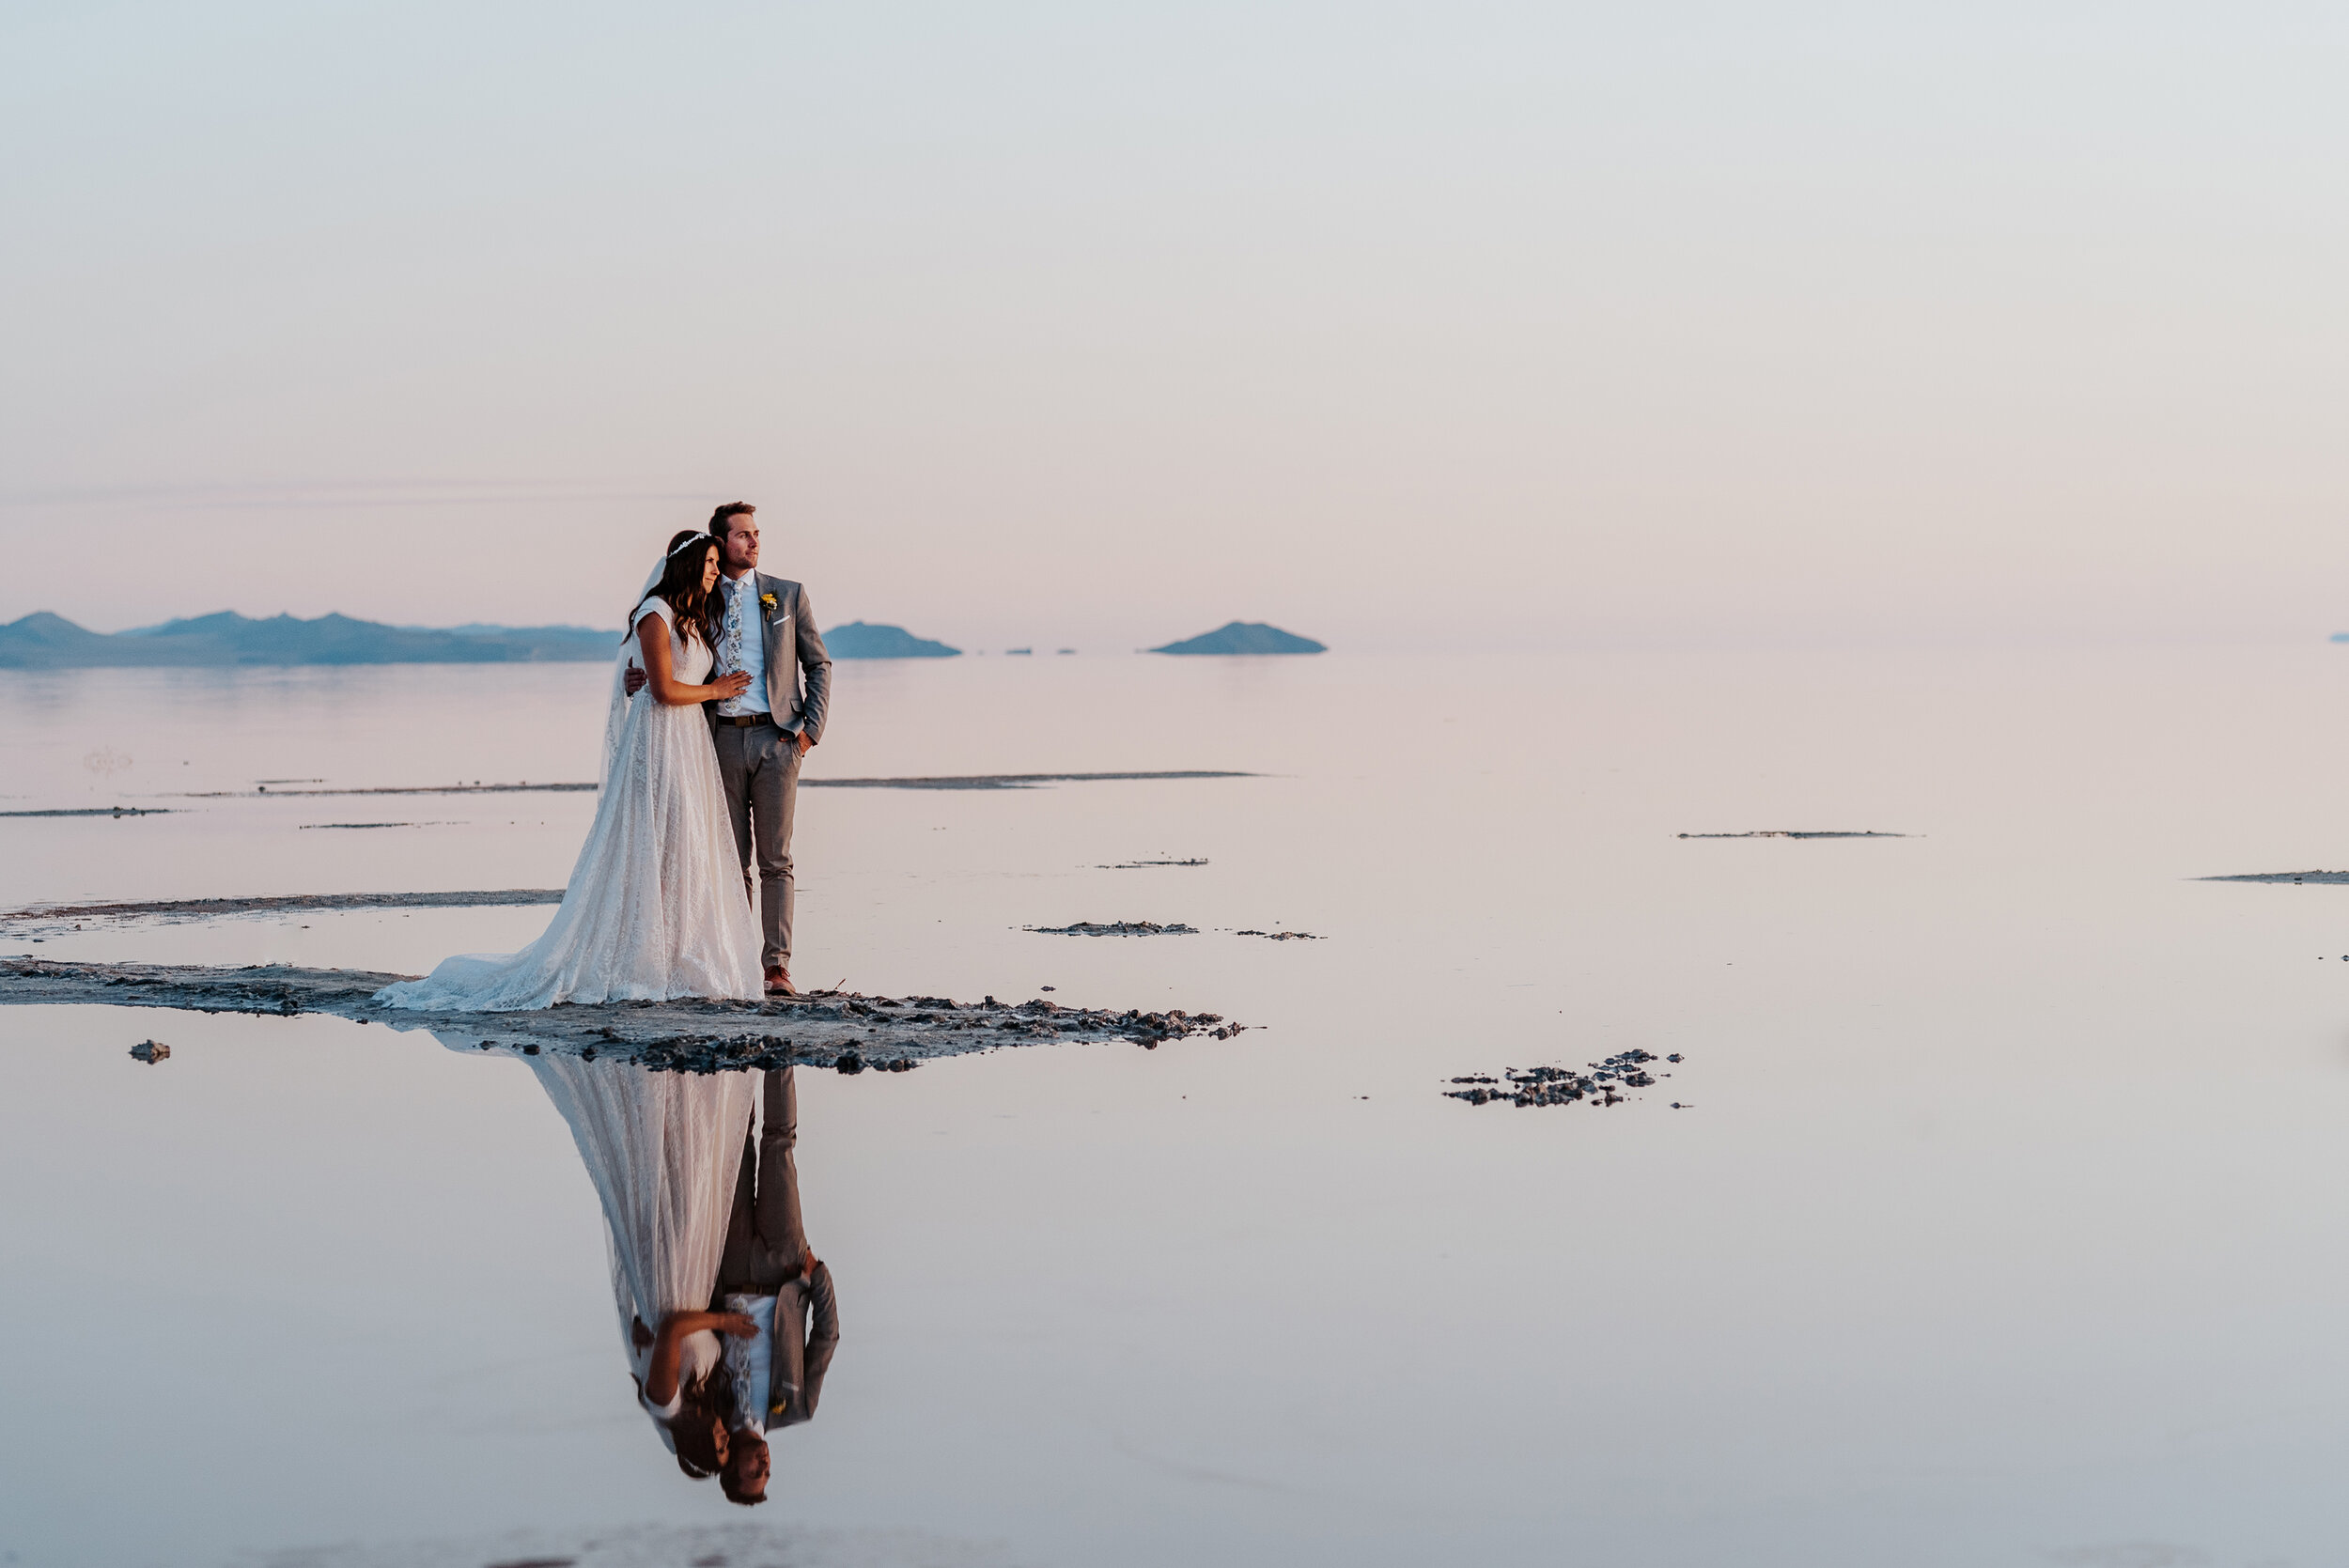 Arm in arm the bride and groom watched as the sun disappeared beyond the mountains  in the distance during their formal wedding photography session at the Spiral Jetty in Utah. #spiraljetty #GreatSaltLake #formalsession #SaltFlats #sunsetphotosession #NorthernUtah #weddingphotographer #formalphotographer #brideandgroom #outdoorformals #weddingformalphotography